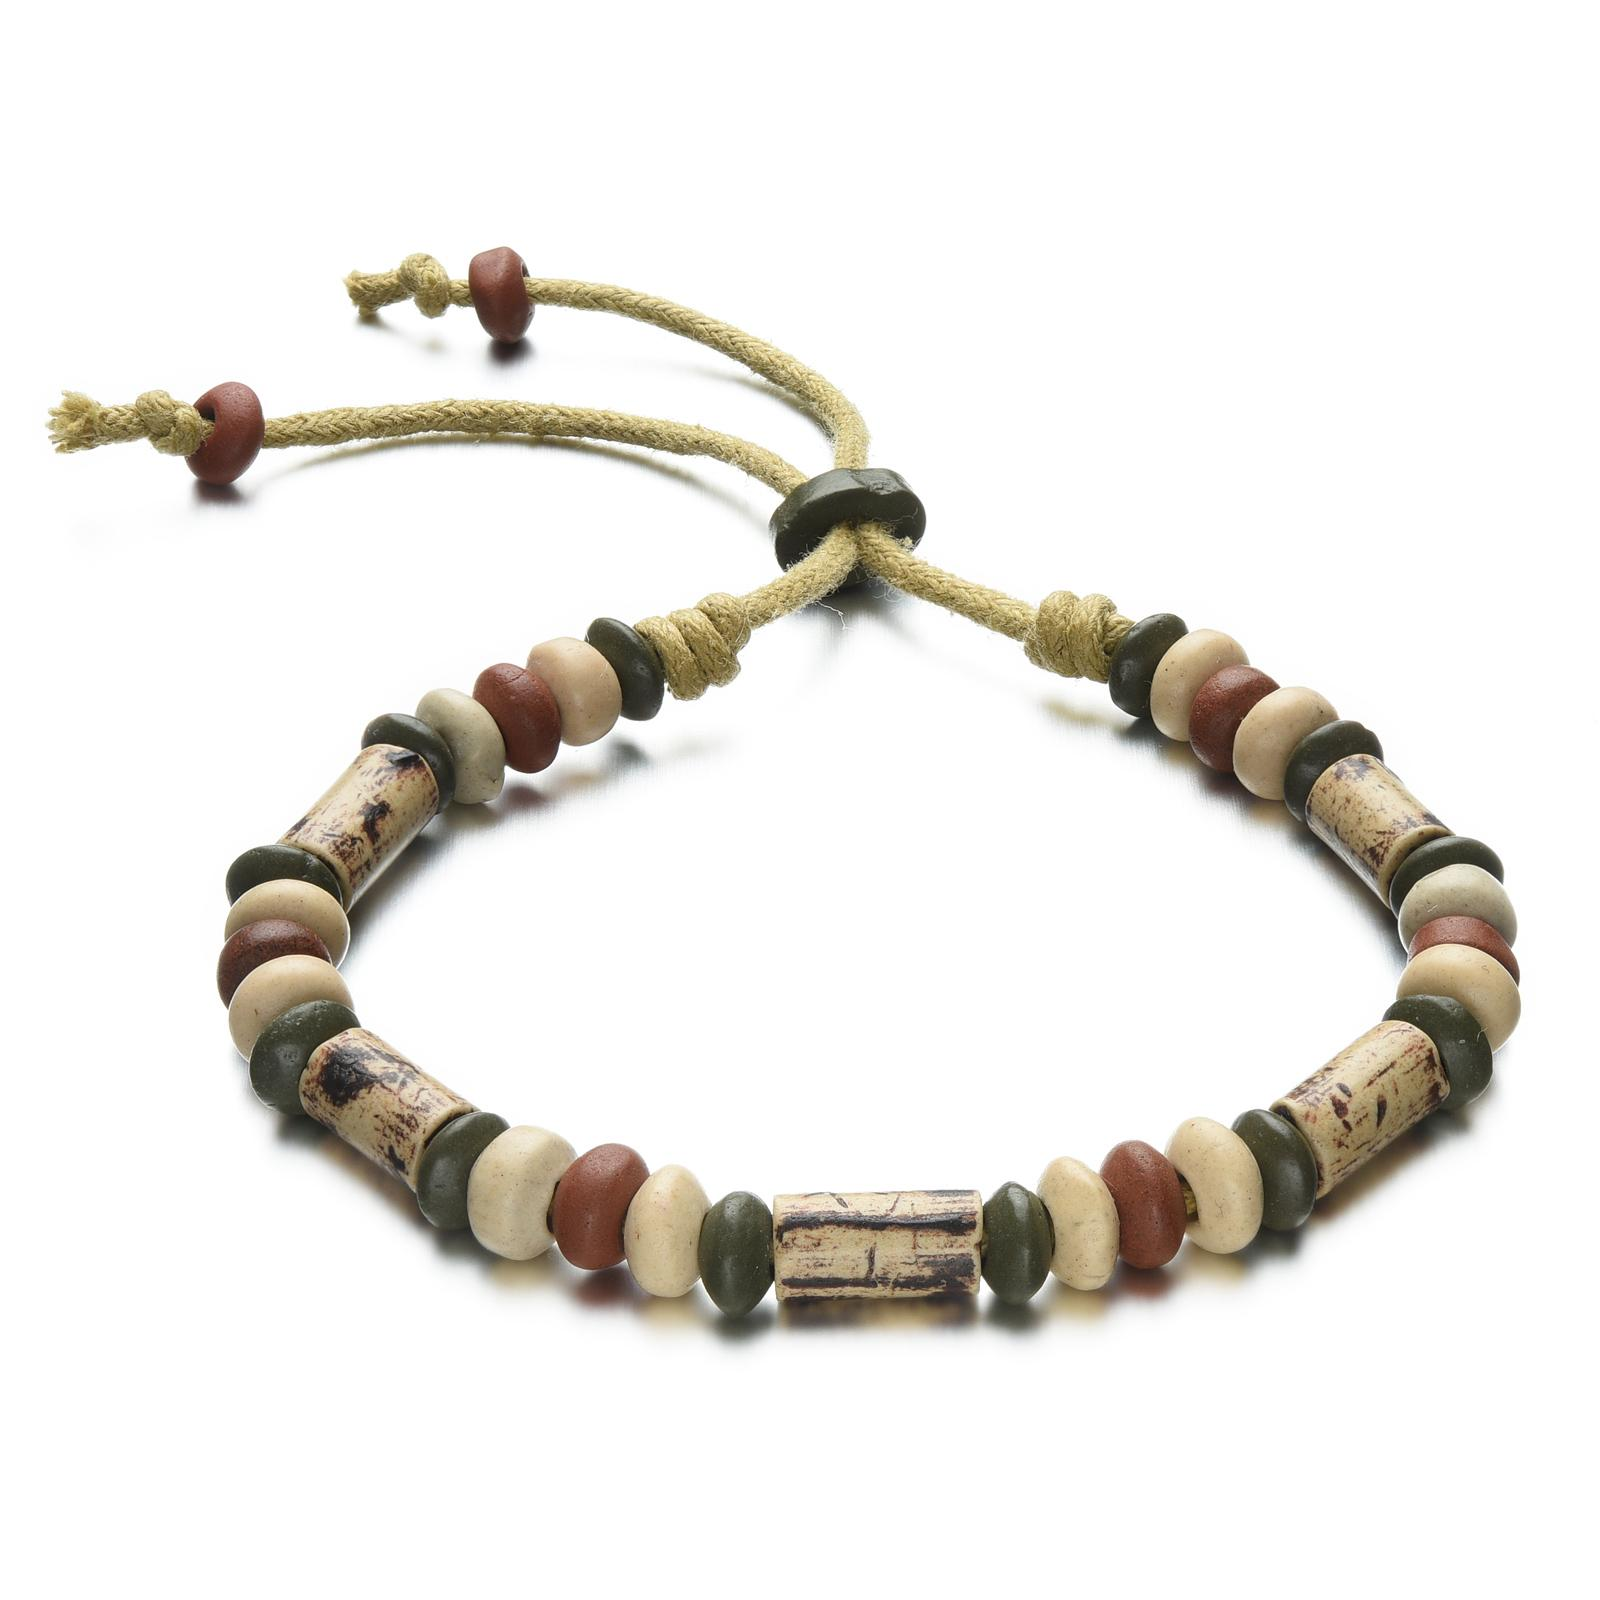 Earth Color Abacus Rondelle Clay Beads String Bracelet Adjustable